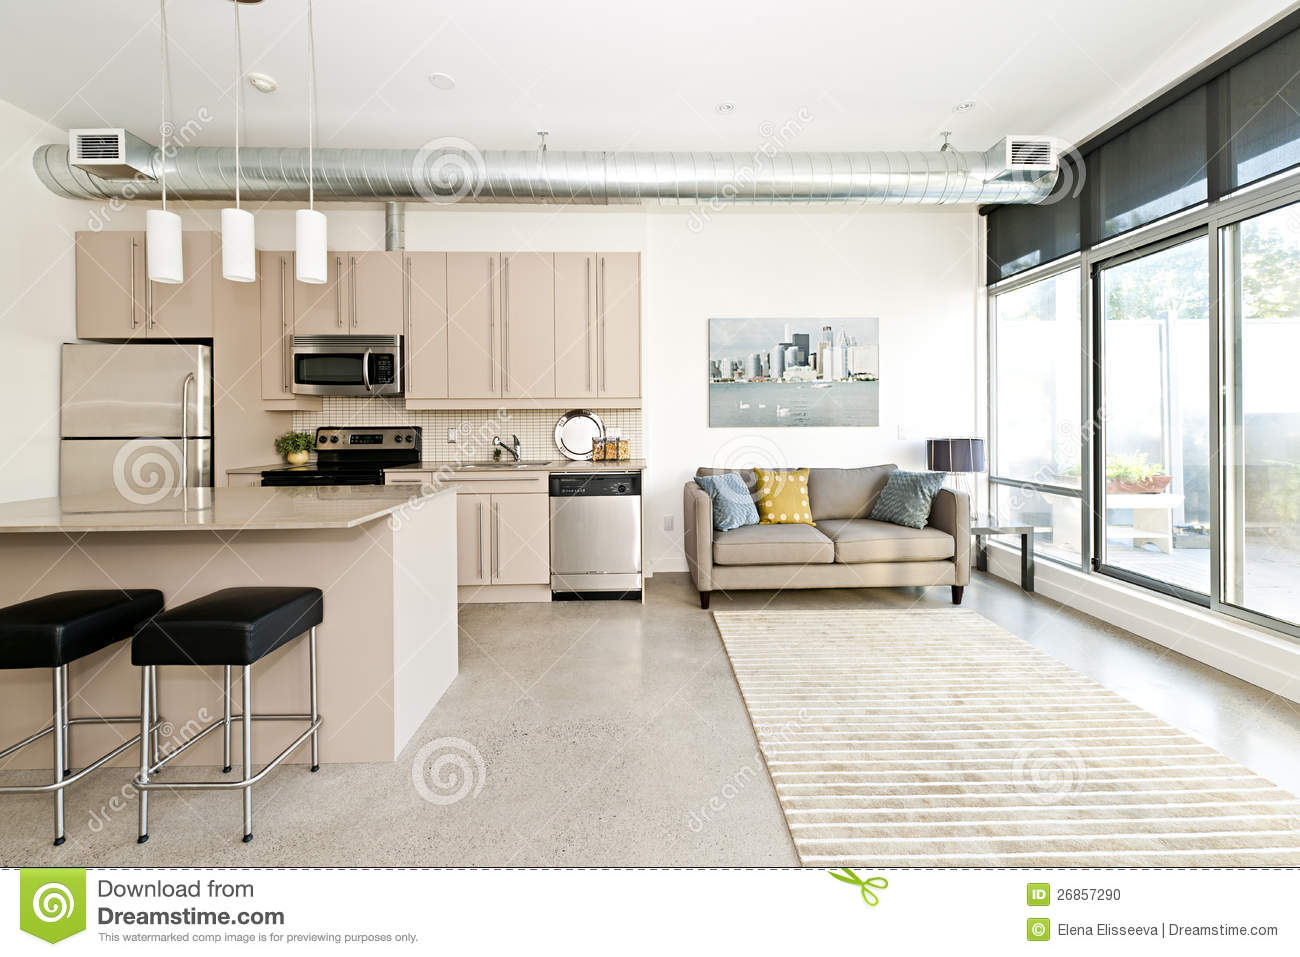 Modern Condo Kitchen And Living Room Stock Photo - Image of carpet ...